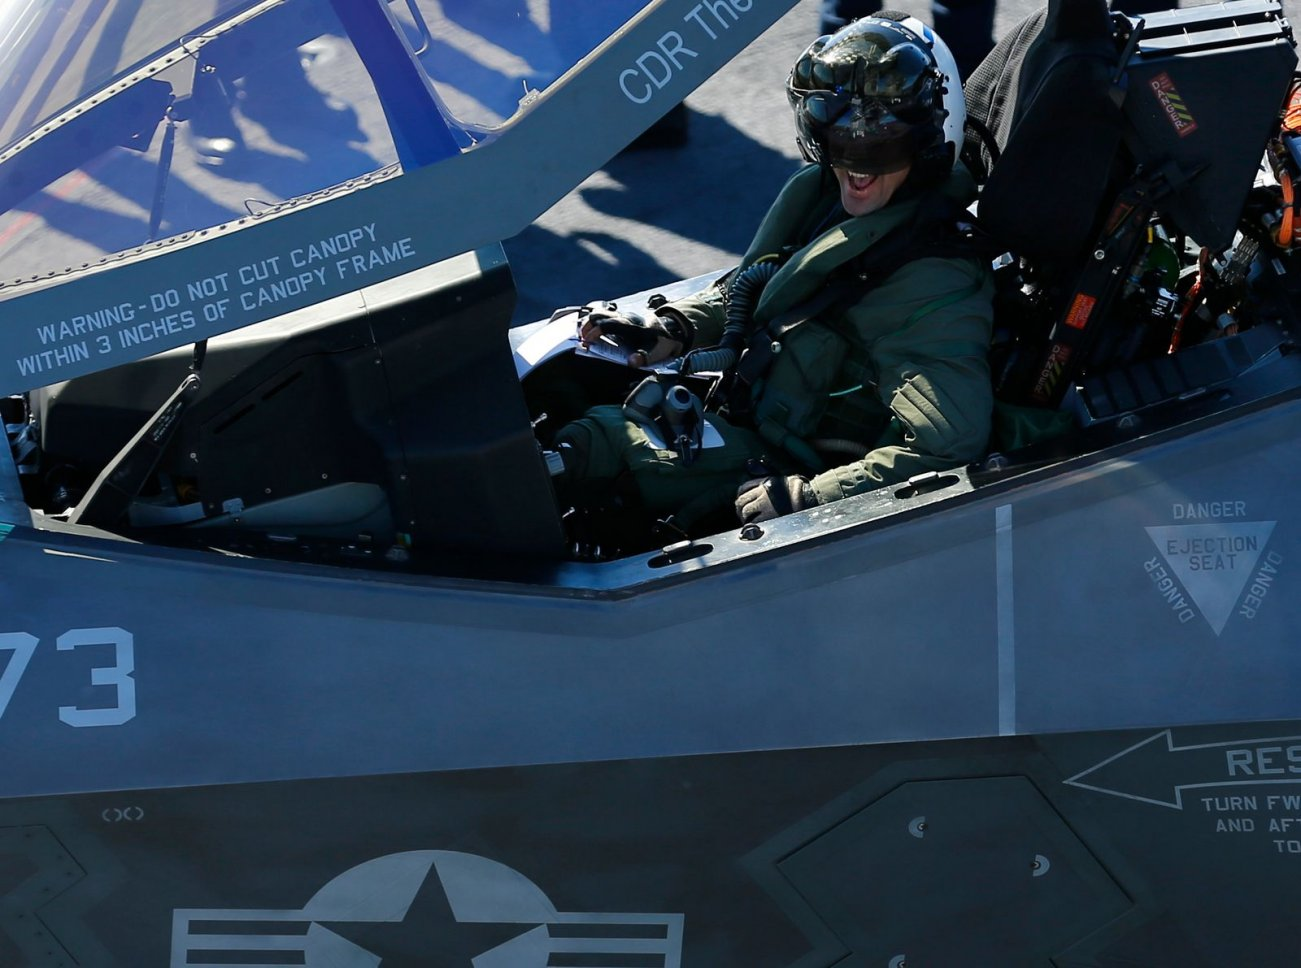 Super Stealth: Could a 6th Generation Fighter Be Sneaker Than the B-2?